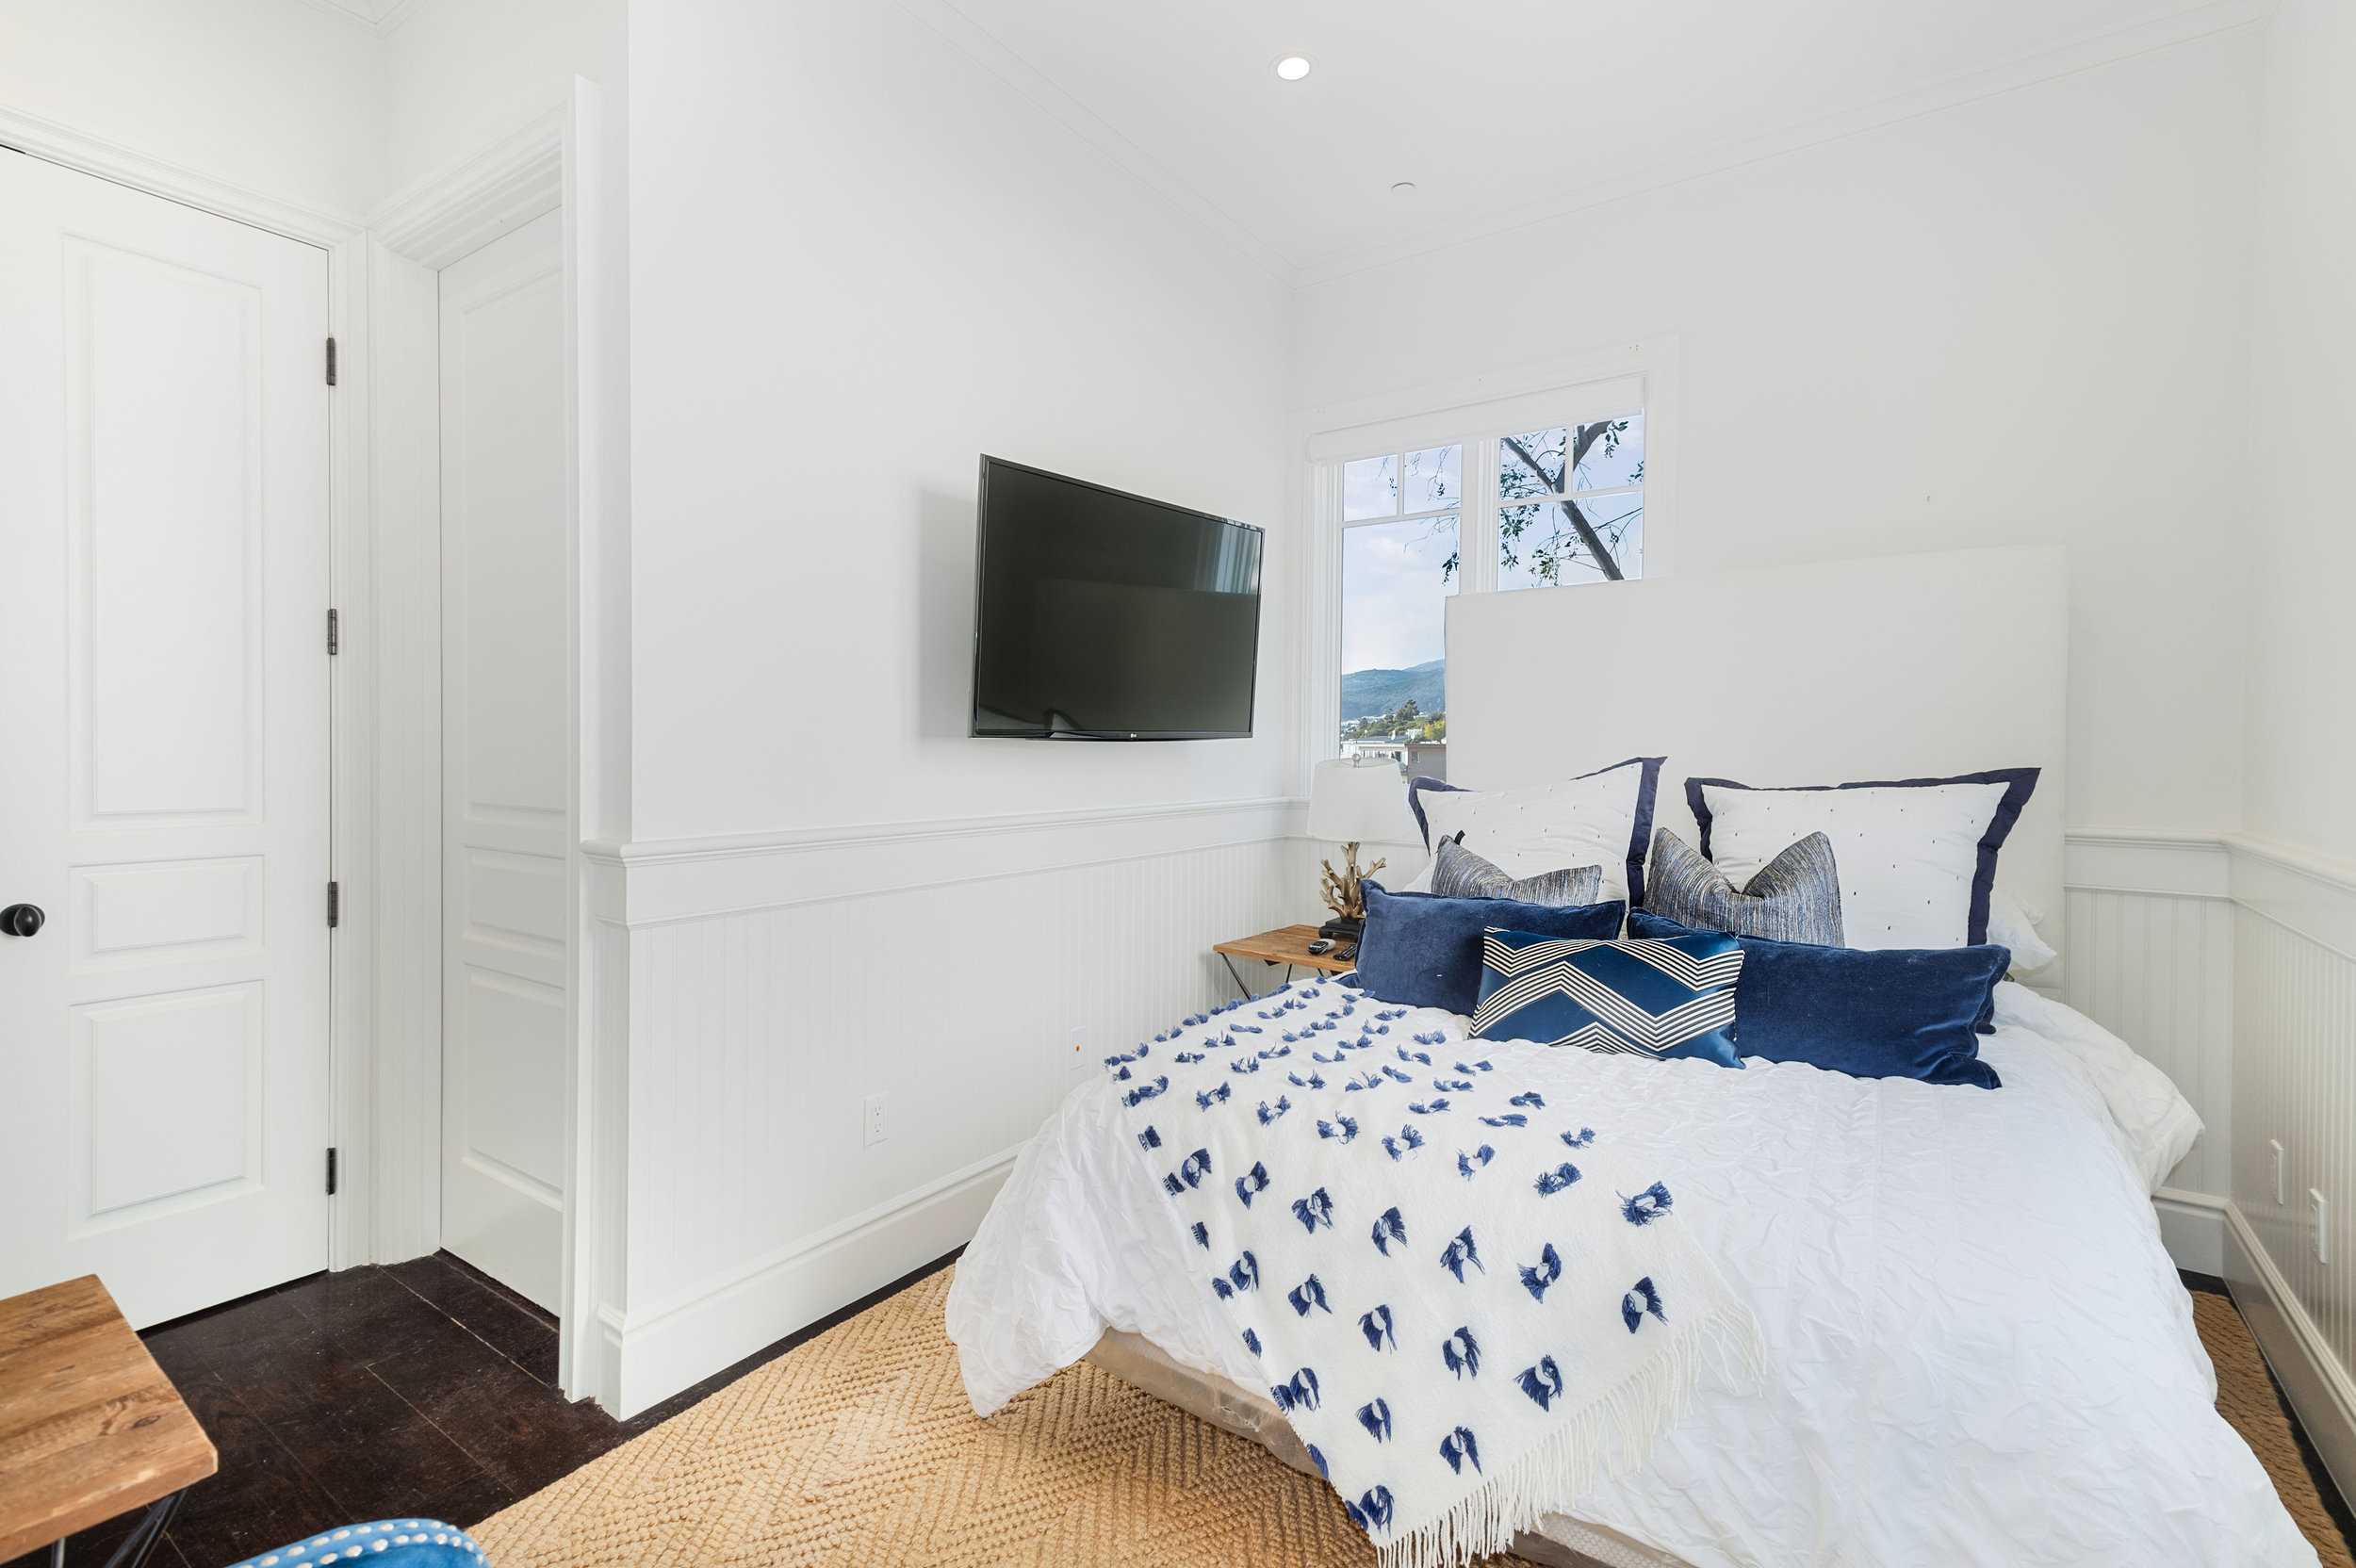 023 Bedroom 17819 Castellammare Drive Pacific Palisades For Sale Lease The Malibu Life Team Compass Luxury Real Estate.jpg